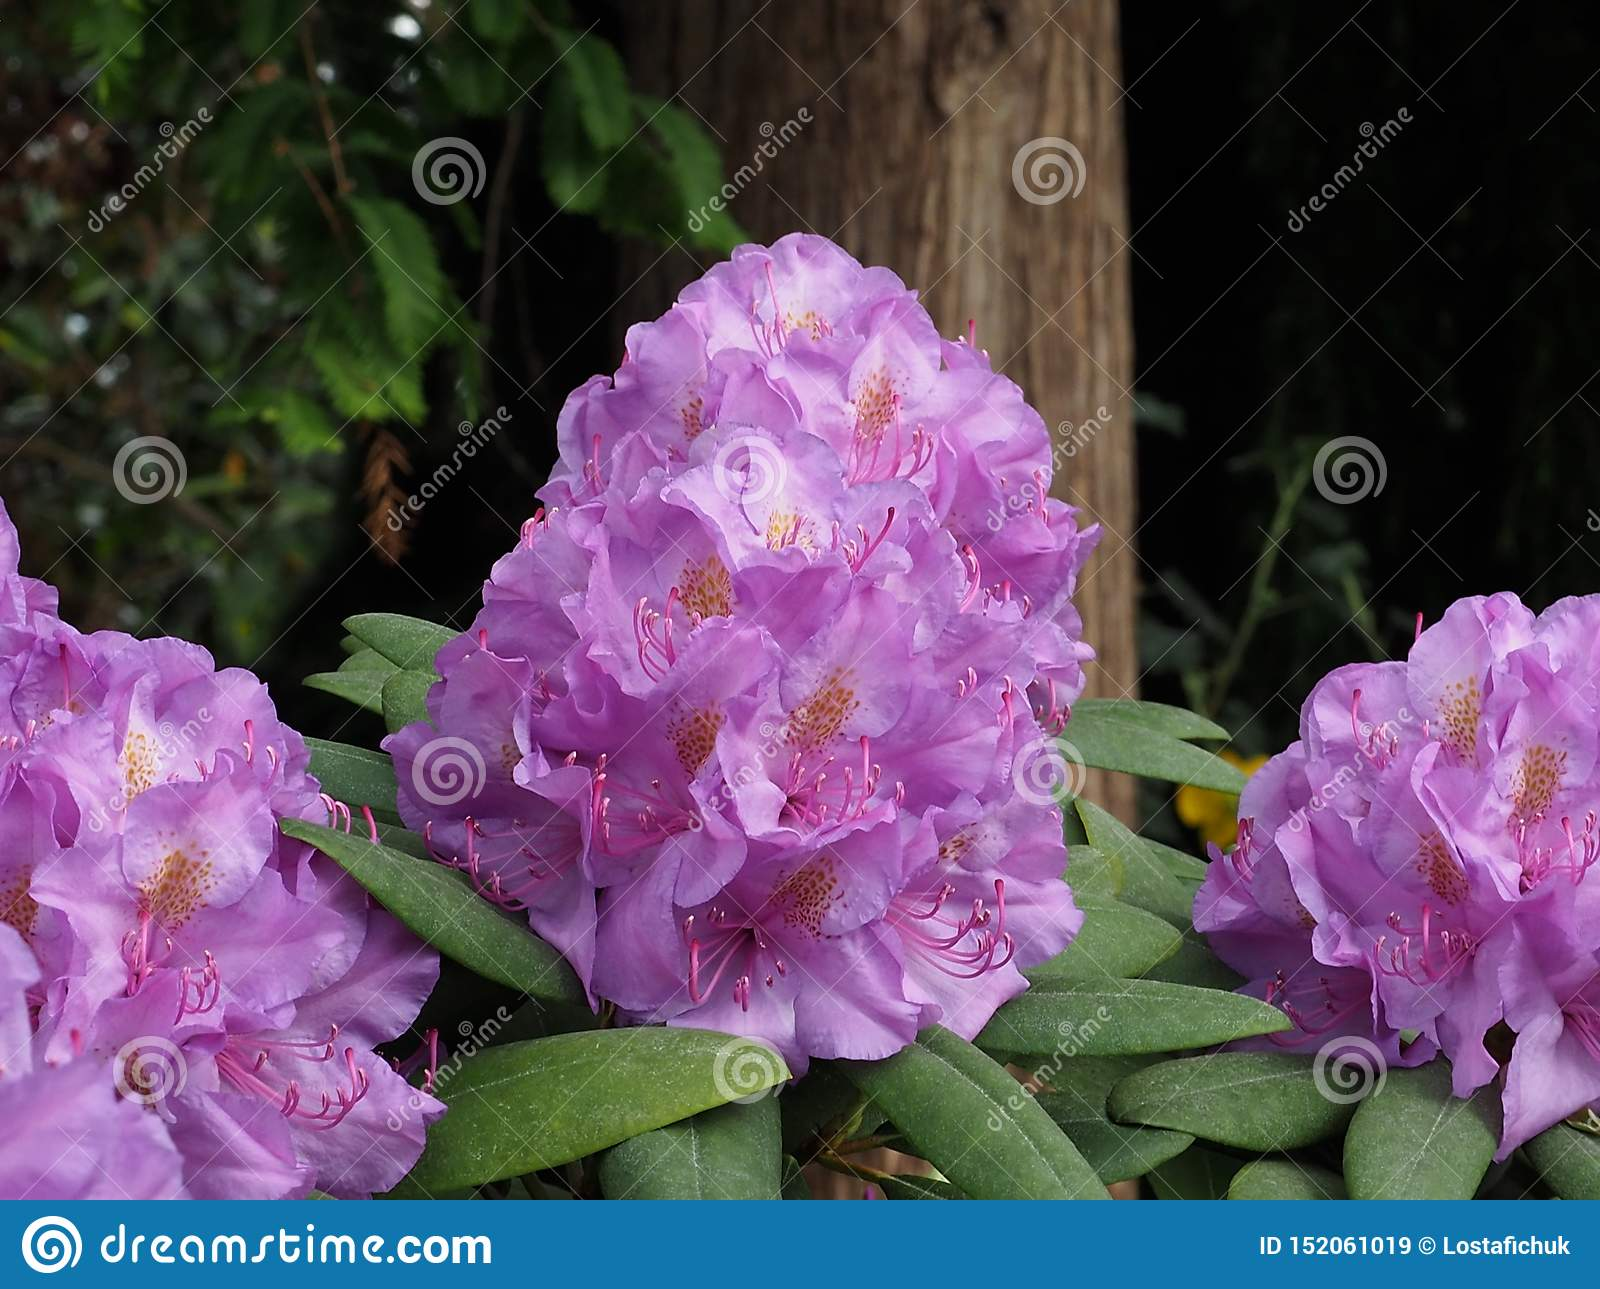 Mauve Rhododendron In Bloom In Late Spring